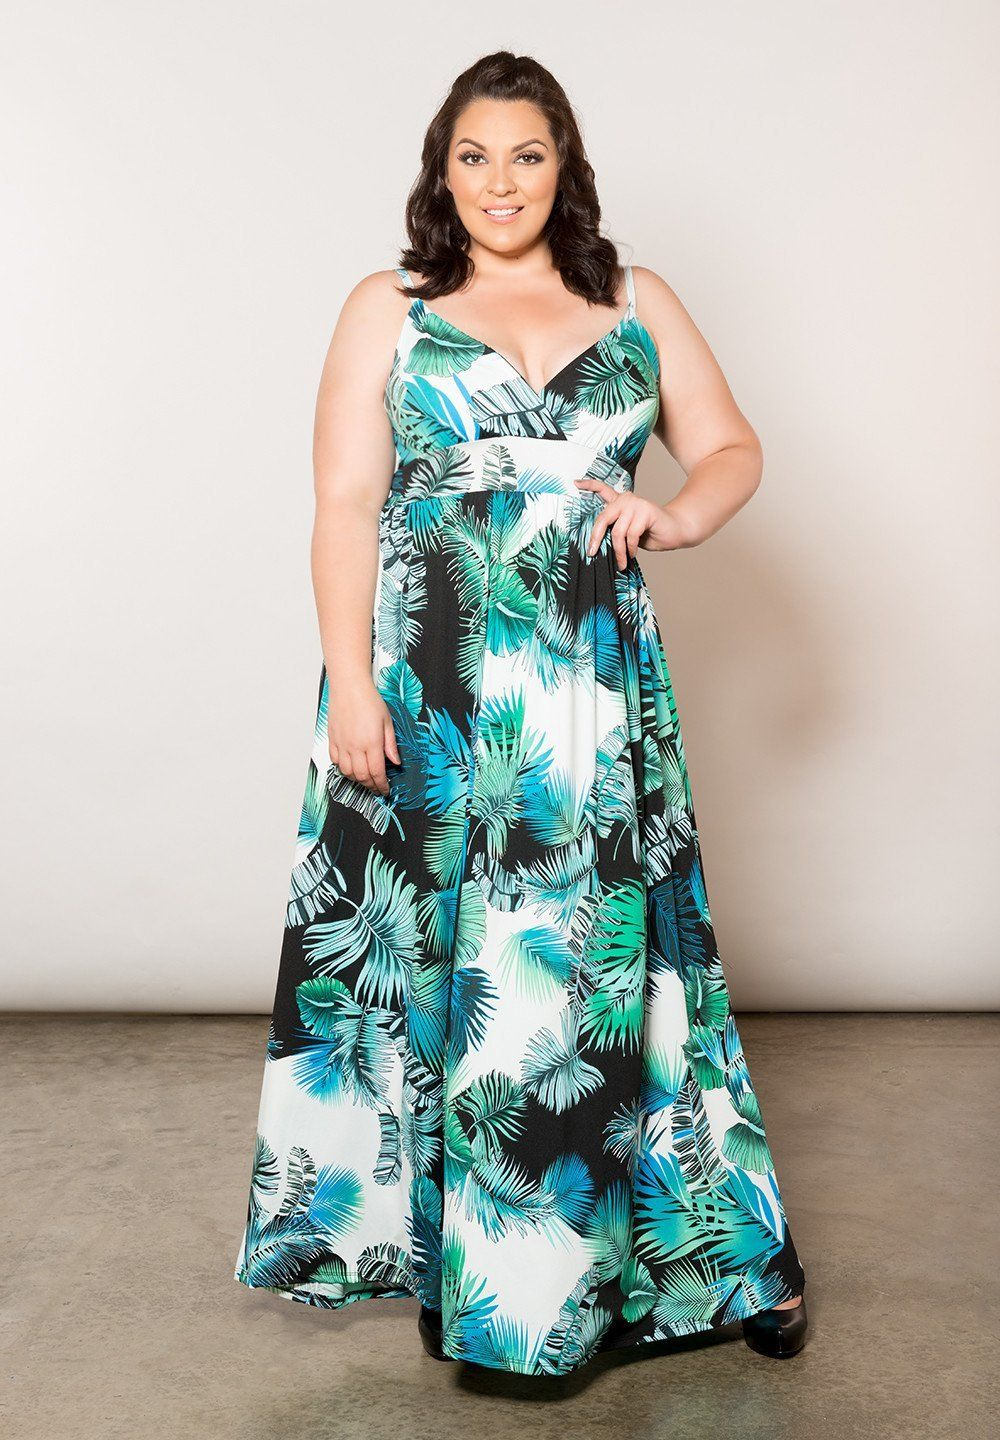 SWAK Designs | New Plus Size Clothing at SWAK in 2019 | Lulus maxi ...